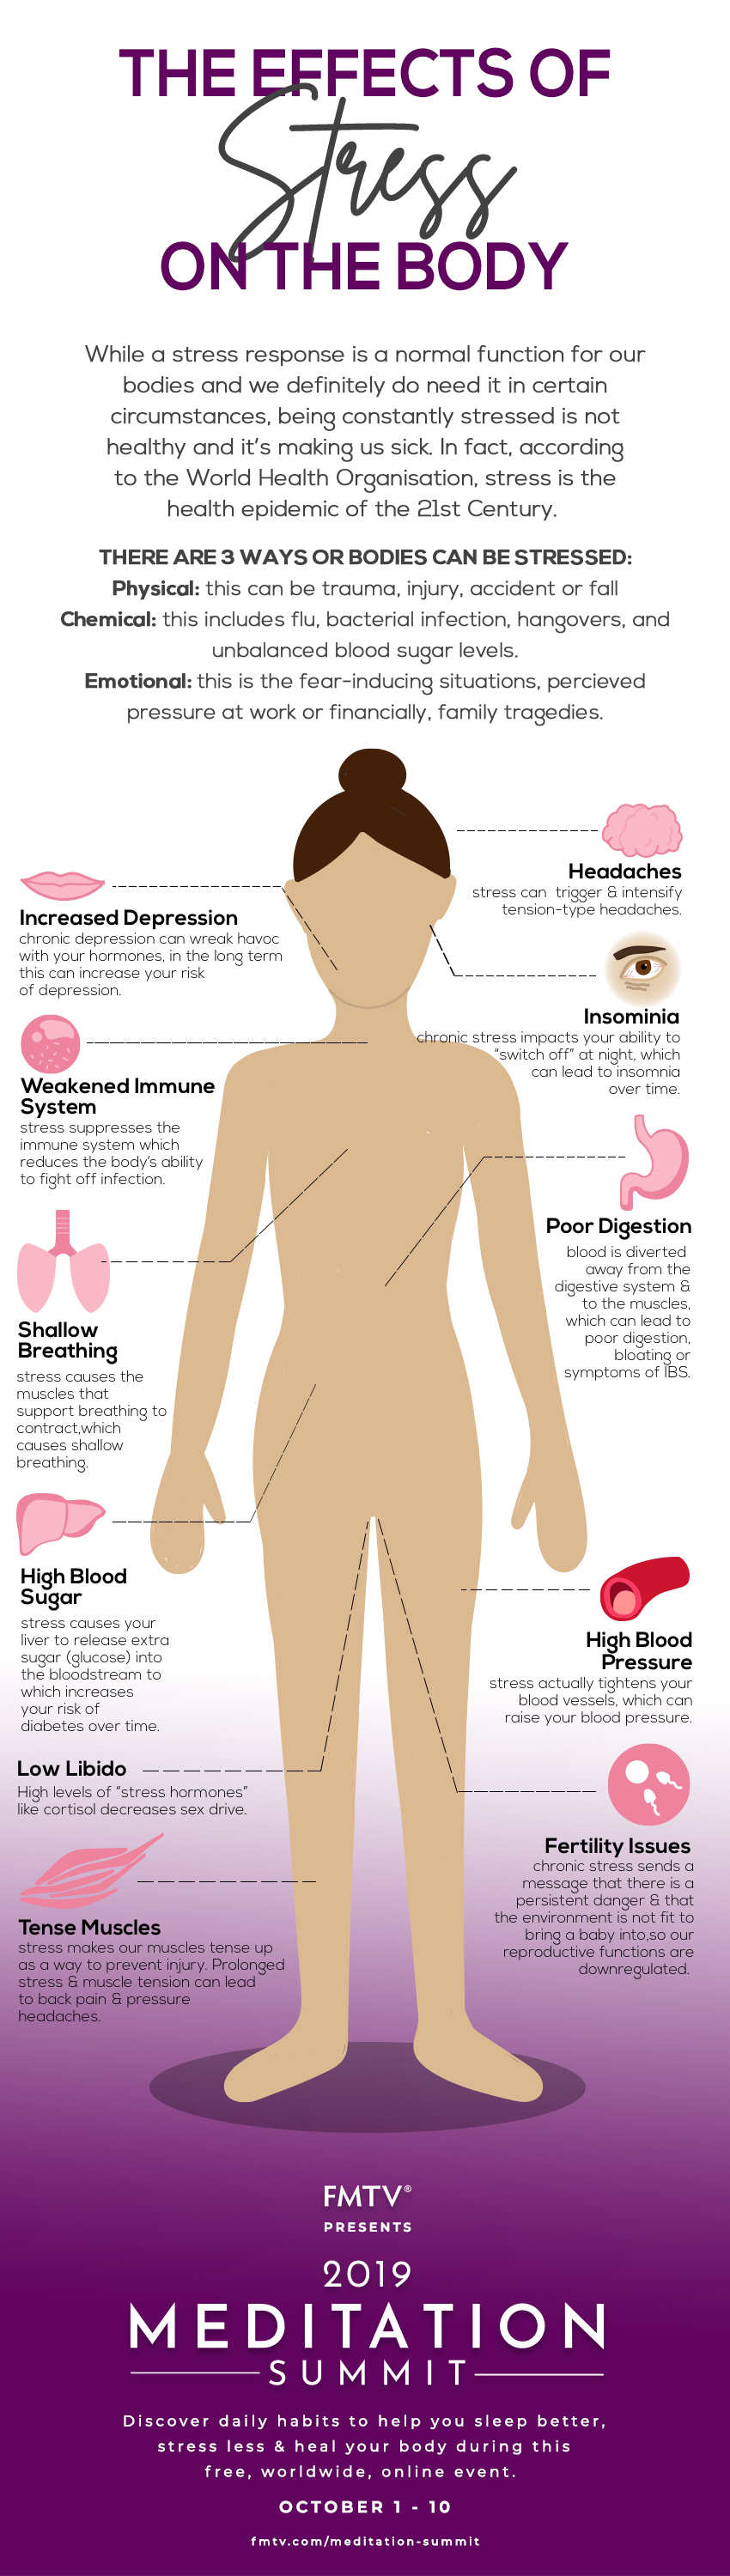 The Effects of Stress on the Body #infographic #Health #Stress #Body #Effects of Stress